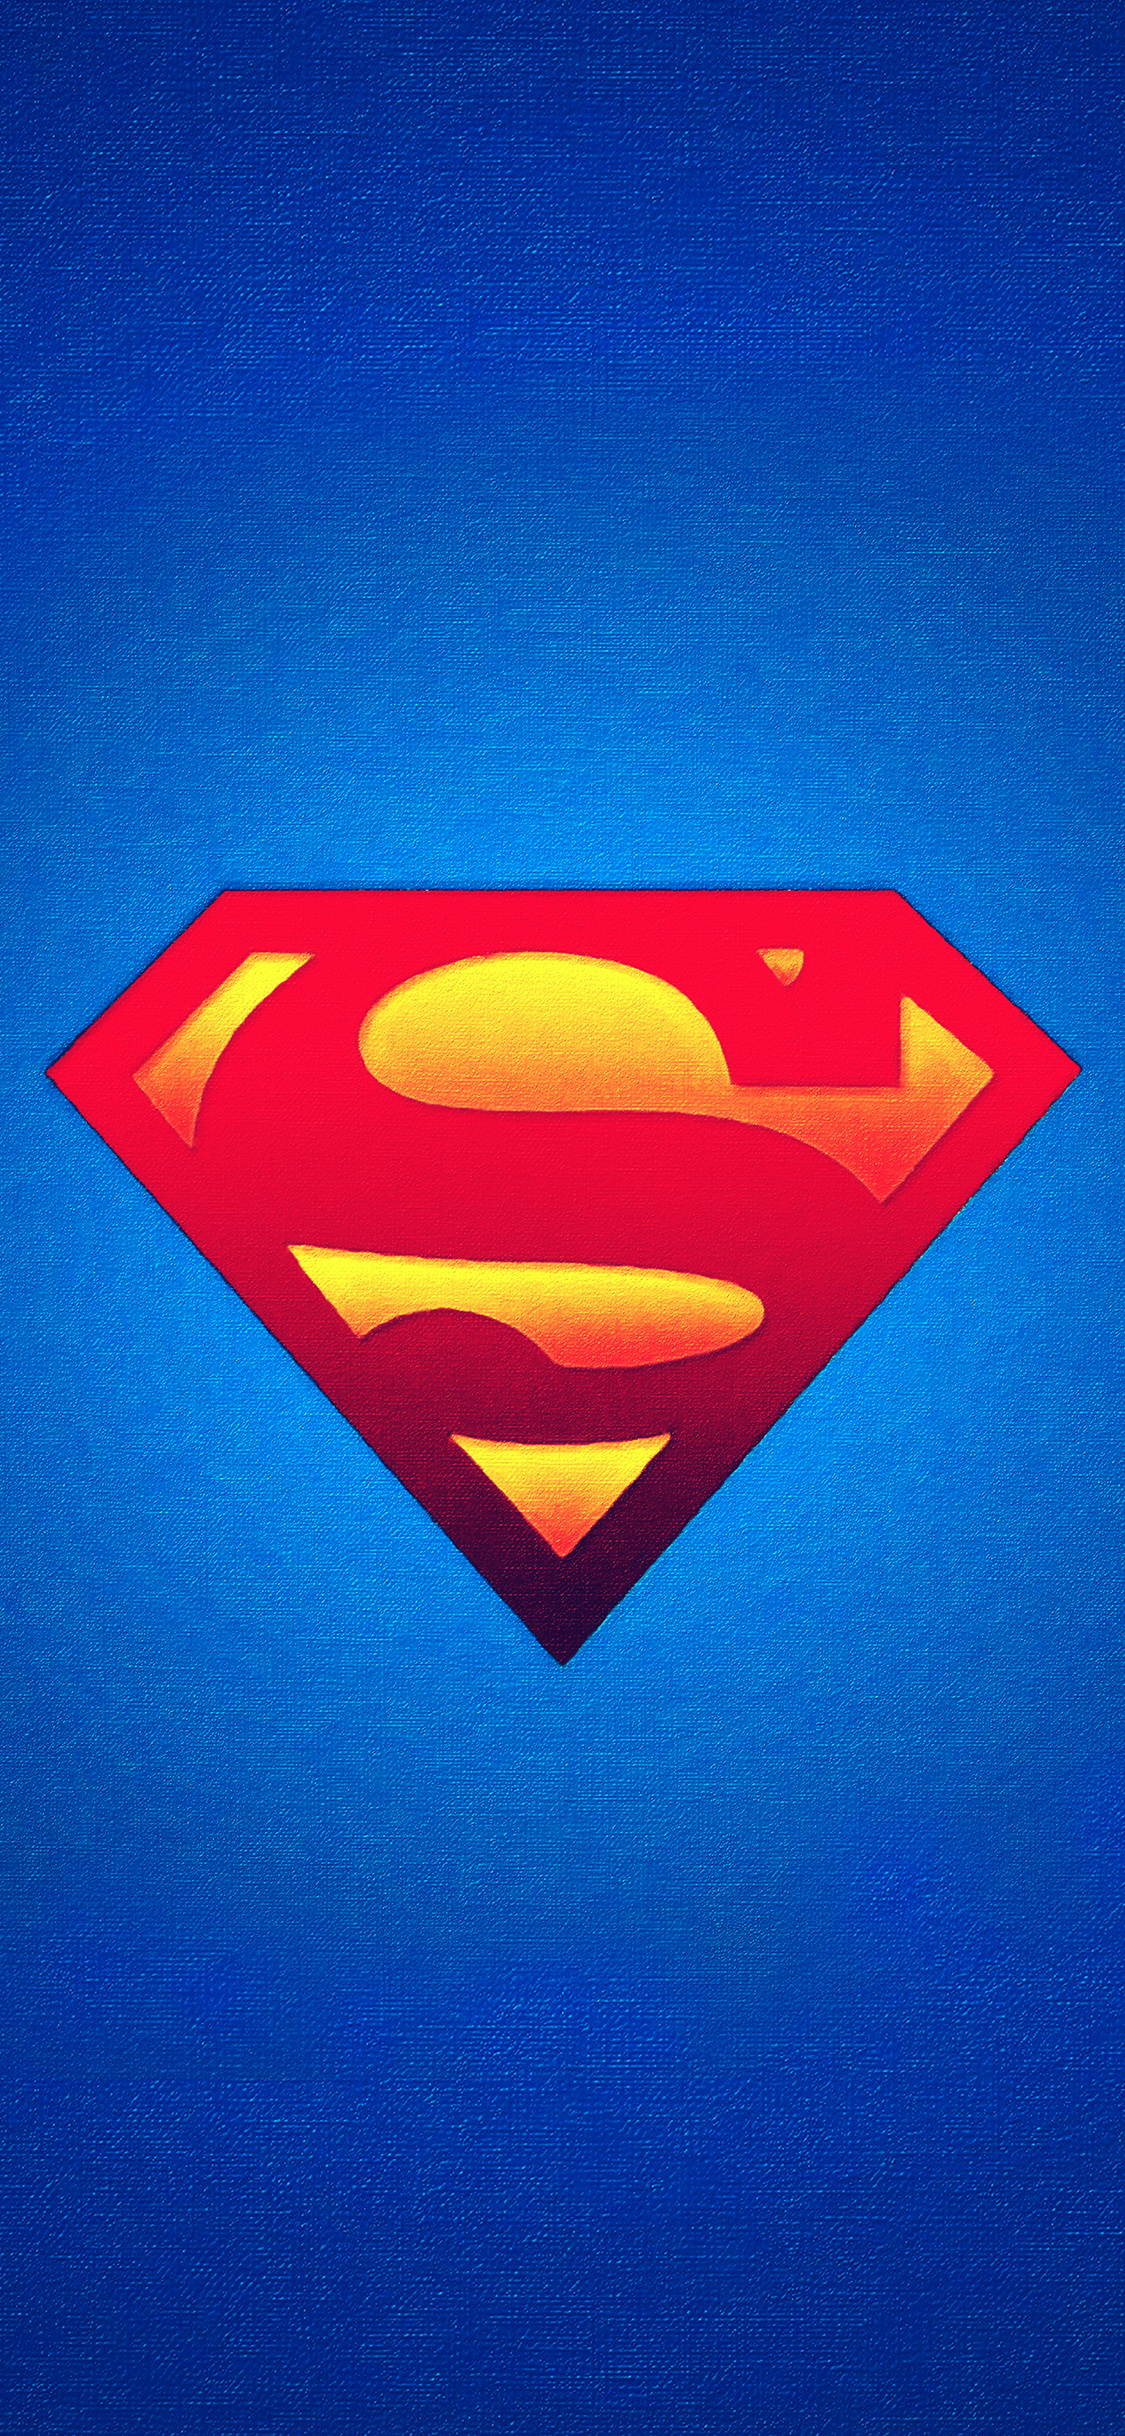 Av28 logo superman blue hero illustration art wallpaper - Superhero iphone wallpaper hd ...